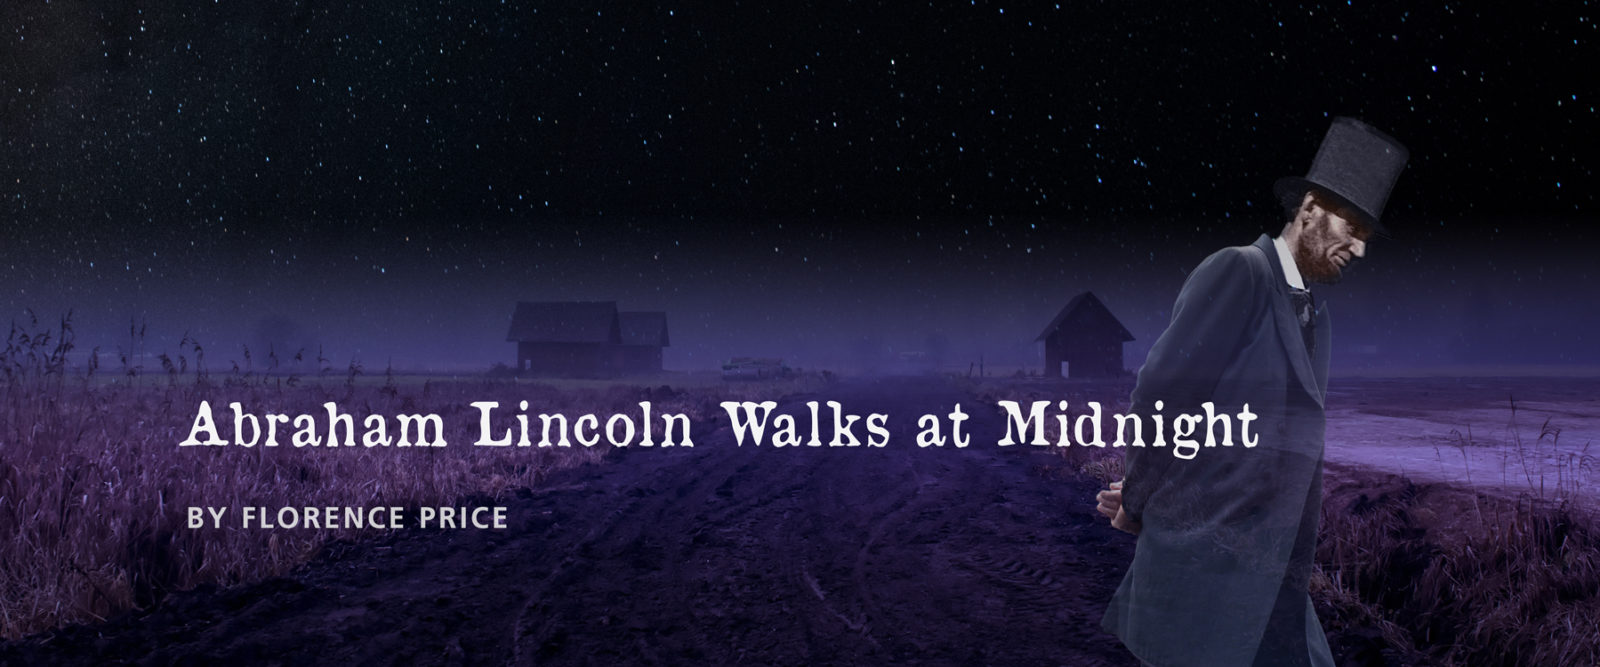 Florence Price: Abraham Lincoln Walks at Midnight